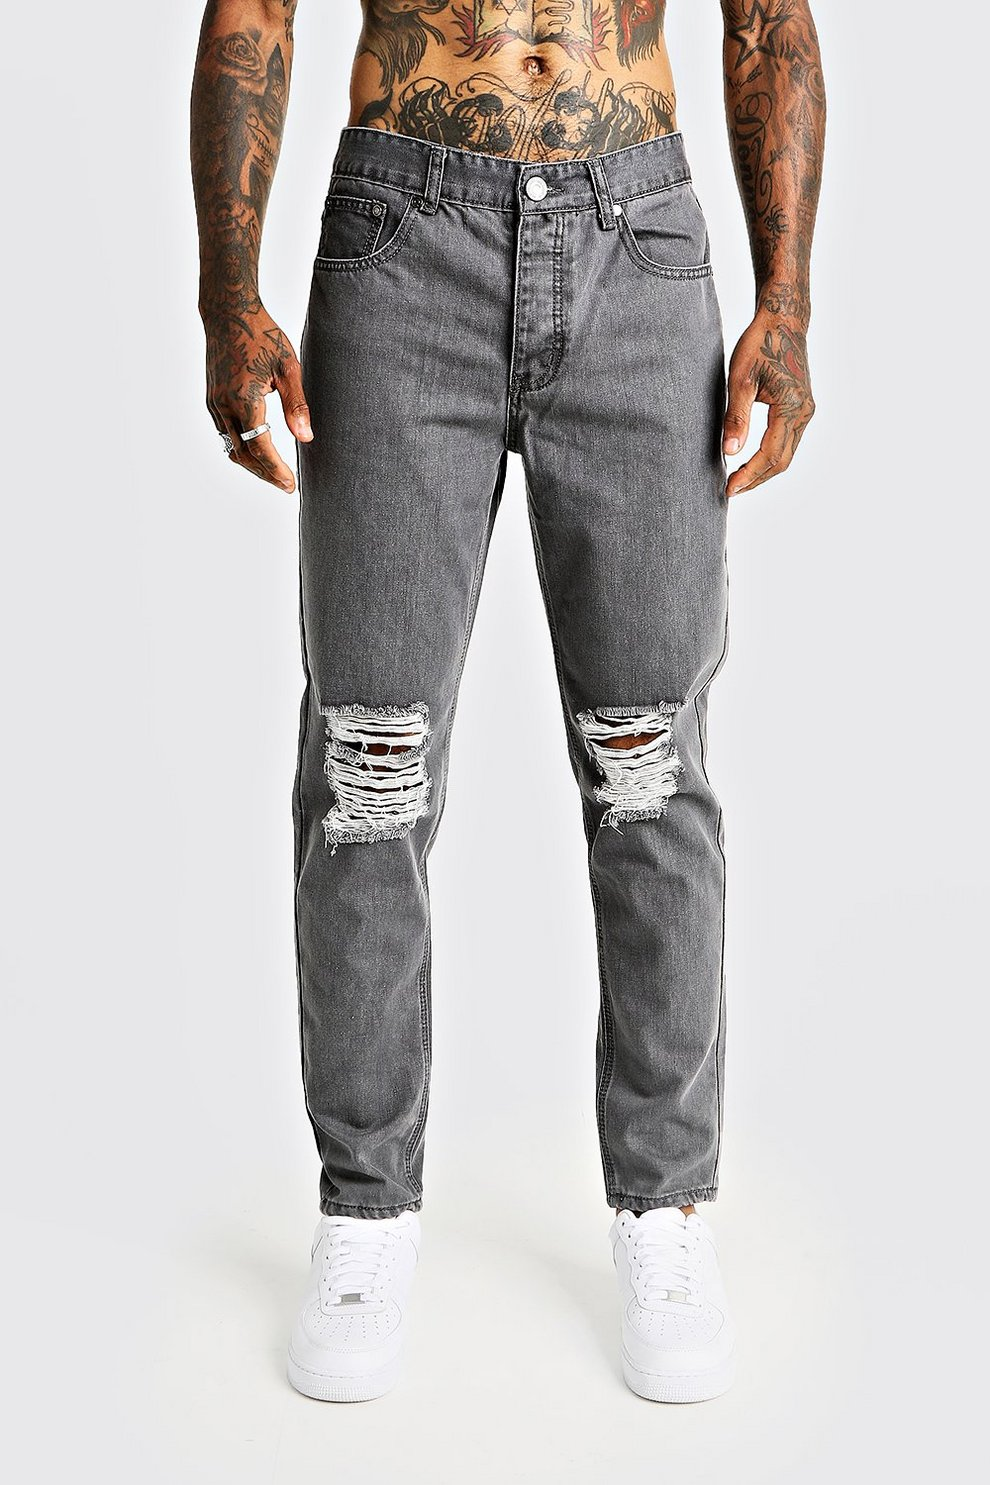 d104e7e2a1cd1 Tapered Fit Denim Jeans With Ripped Knee - boohooMAN